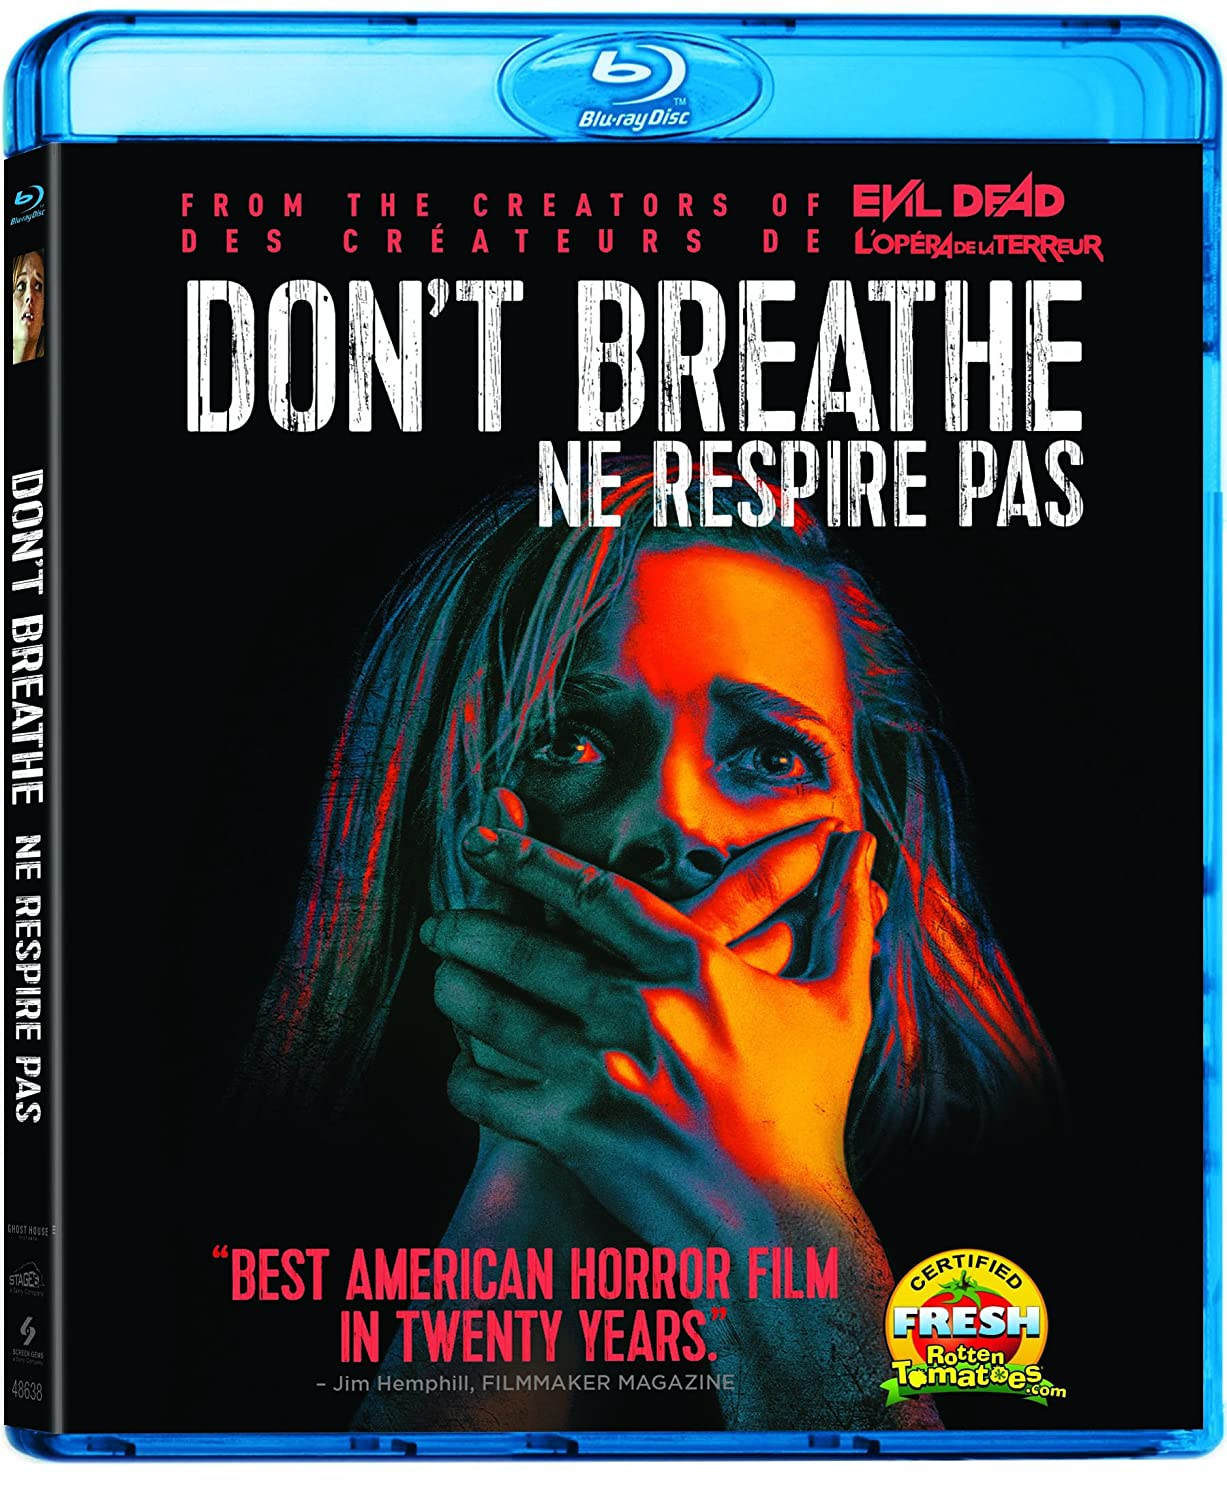 Don't Breathe - La maison des ténèbres MULTiLANGUES BLURAY 720p